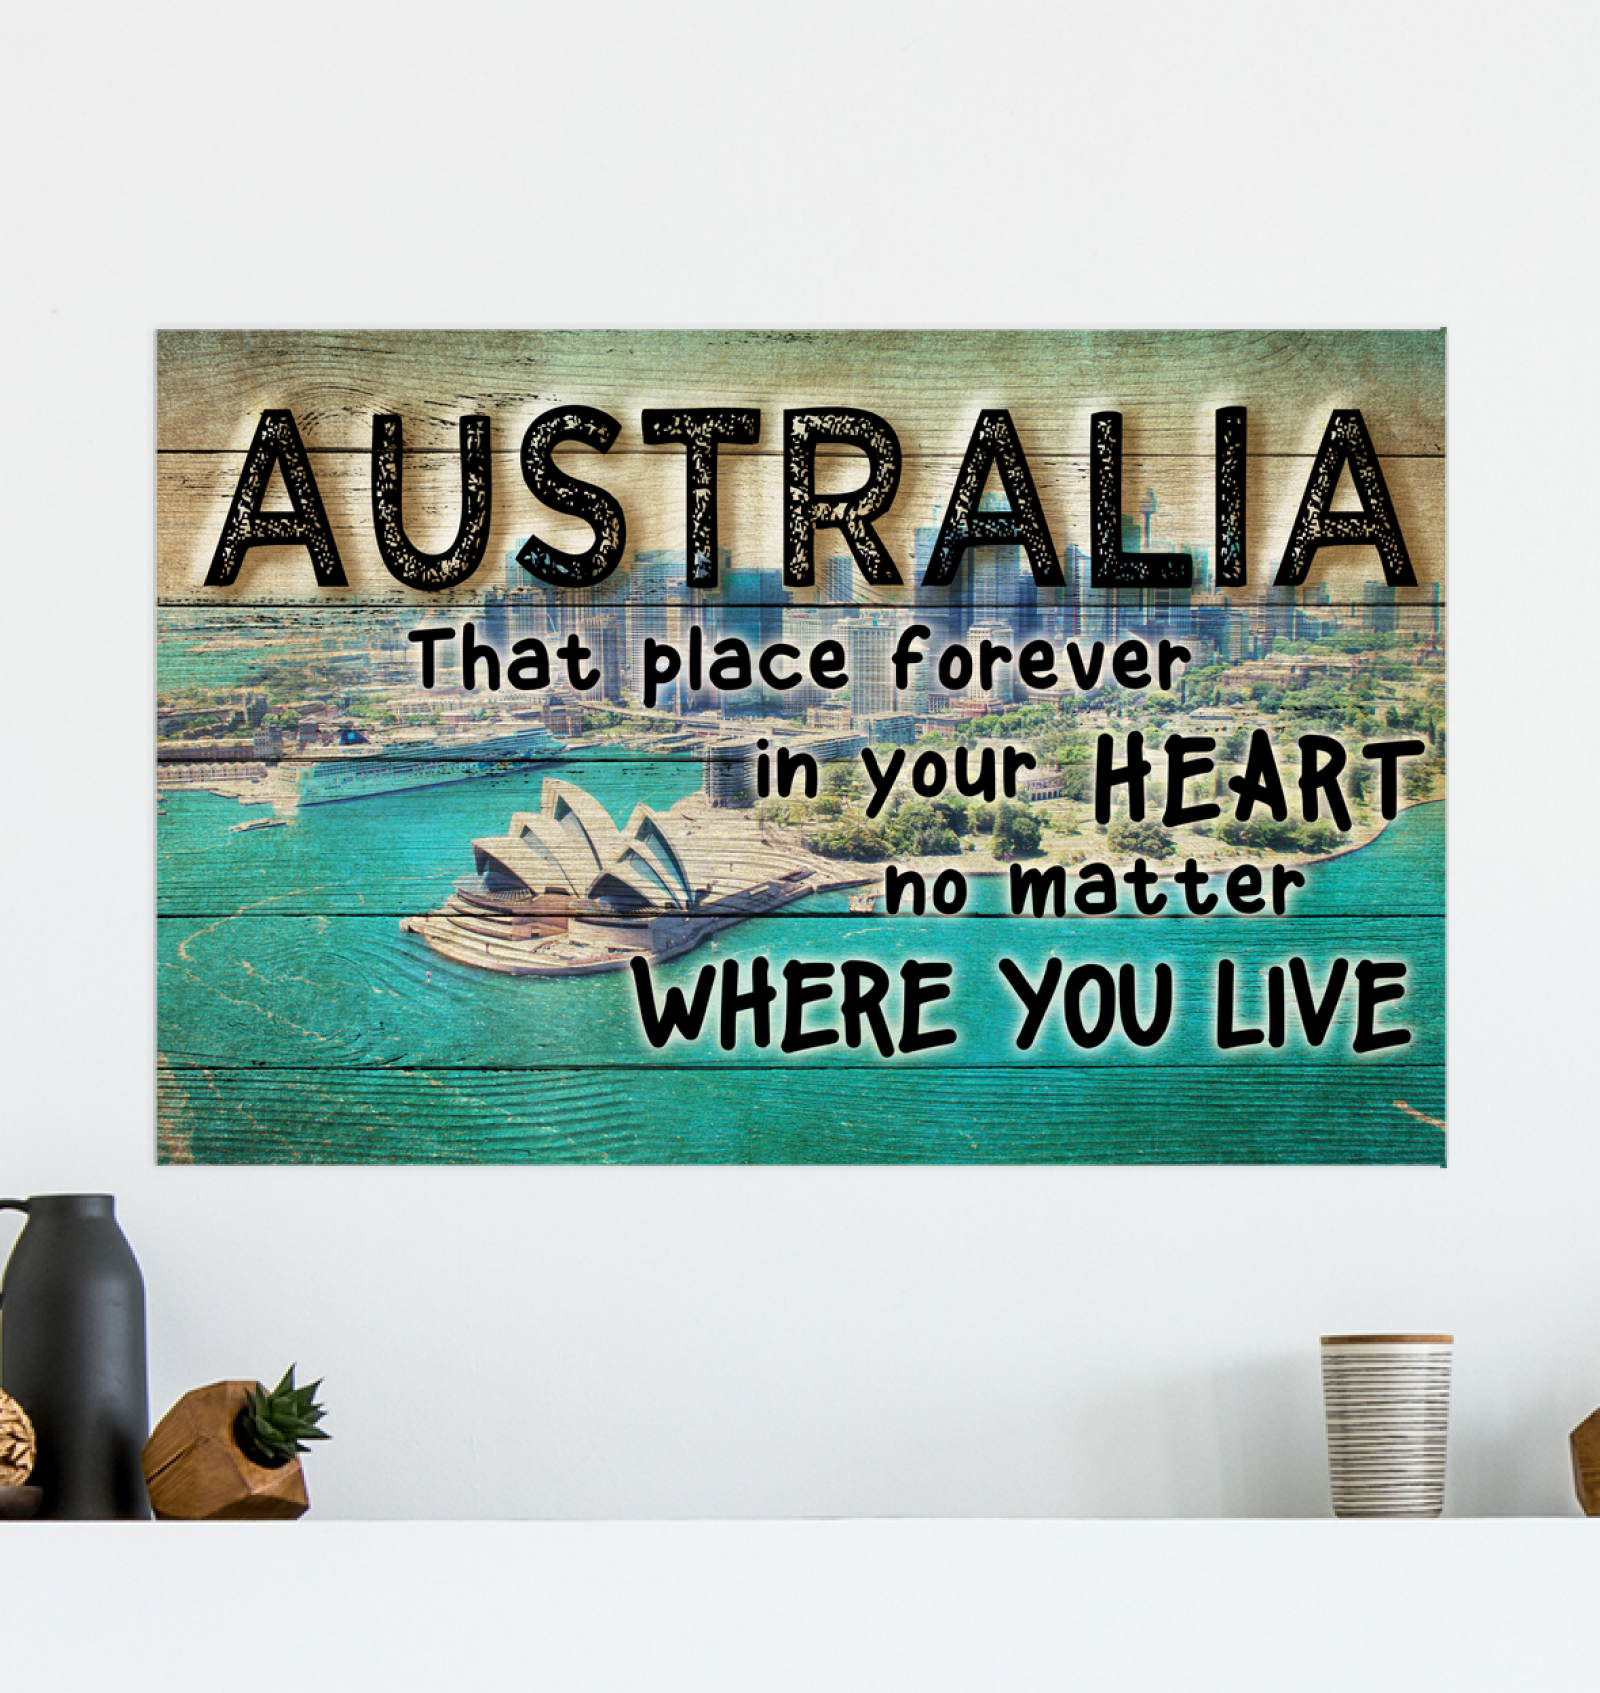 AUSTRALIA THAT PLACE FOREVER IN YOUR HEART NO MATTER WHERE YOUR GO